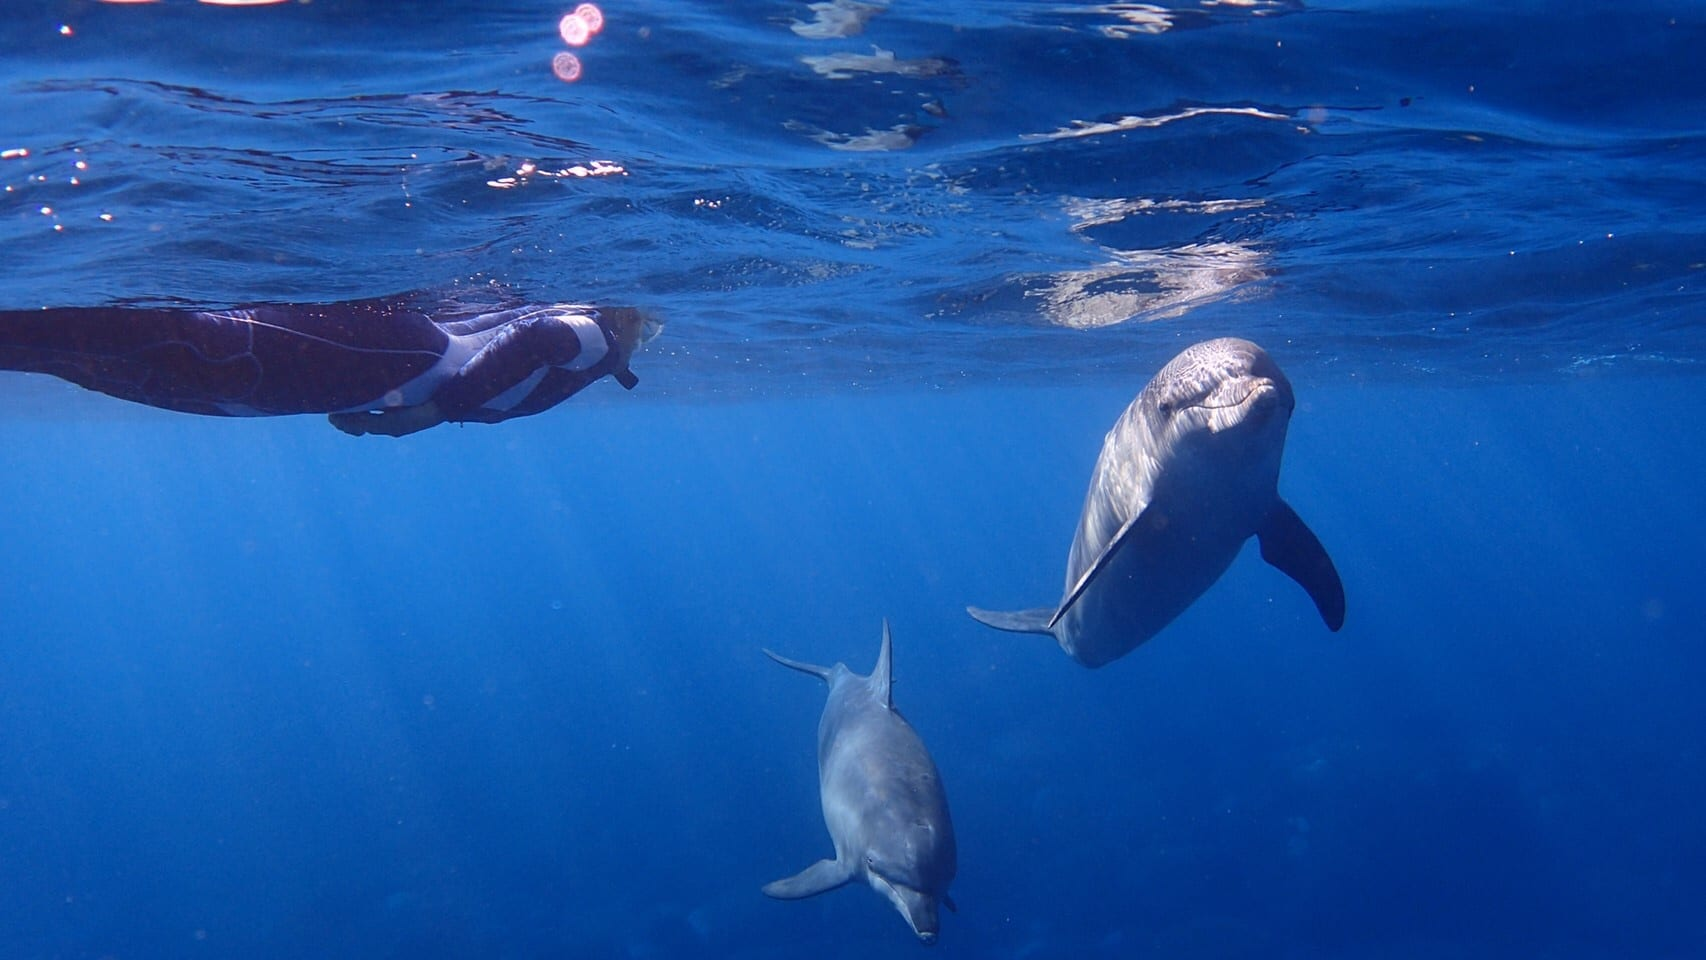 Dolphins and snorkler in the ocean.